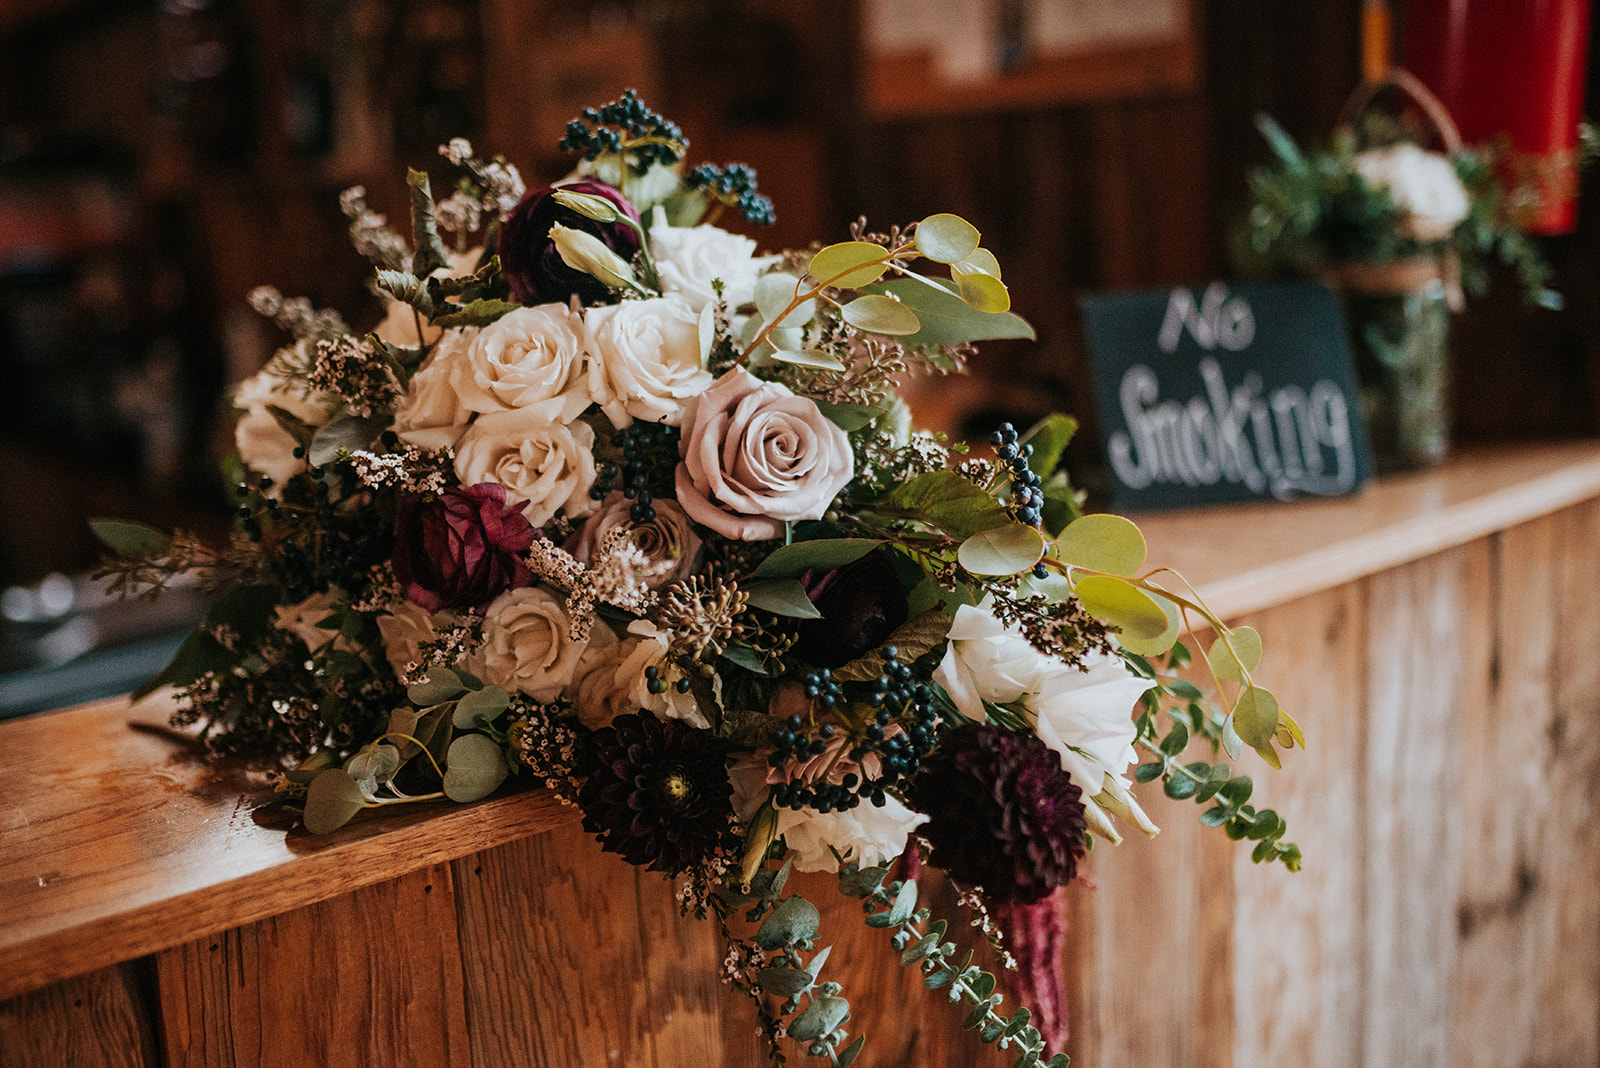 overthevineswisconsinwedding_1260.jpg